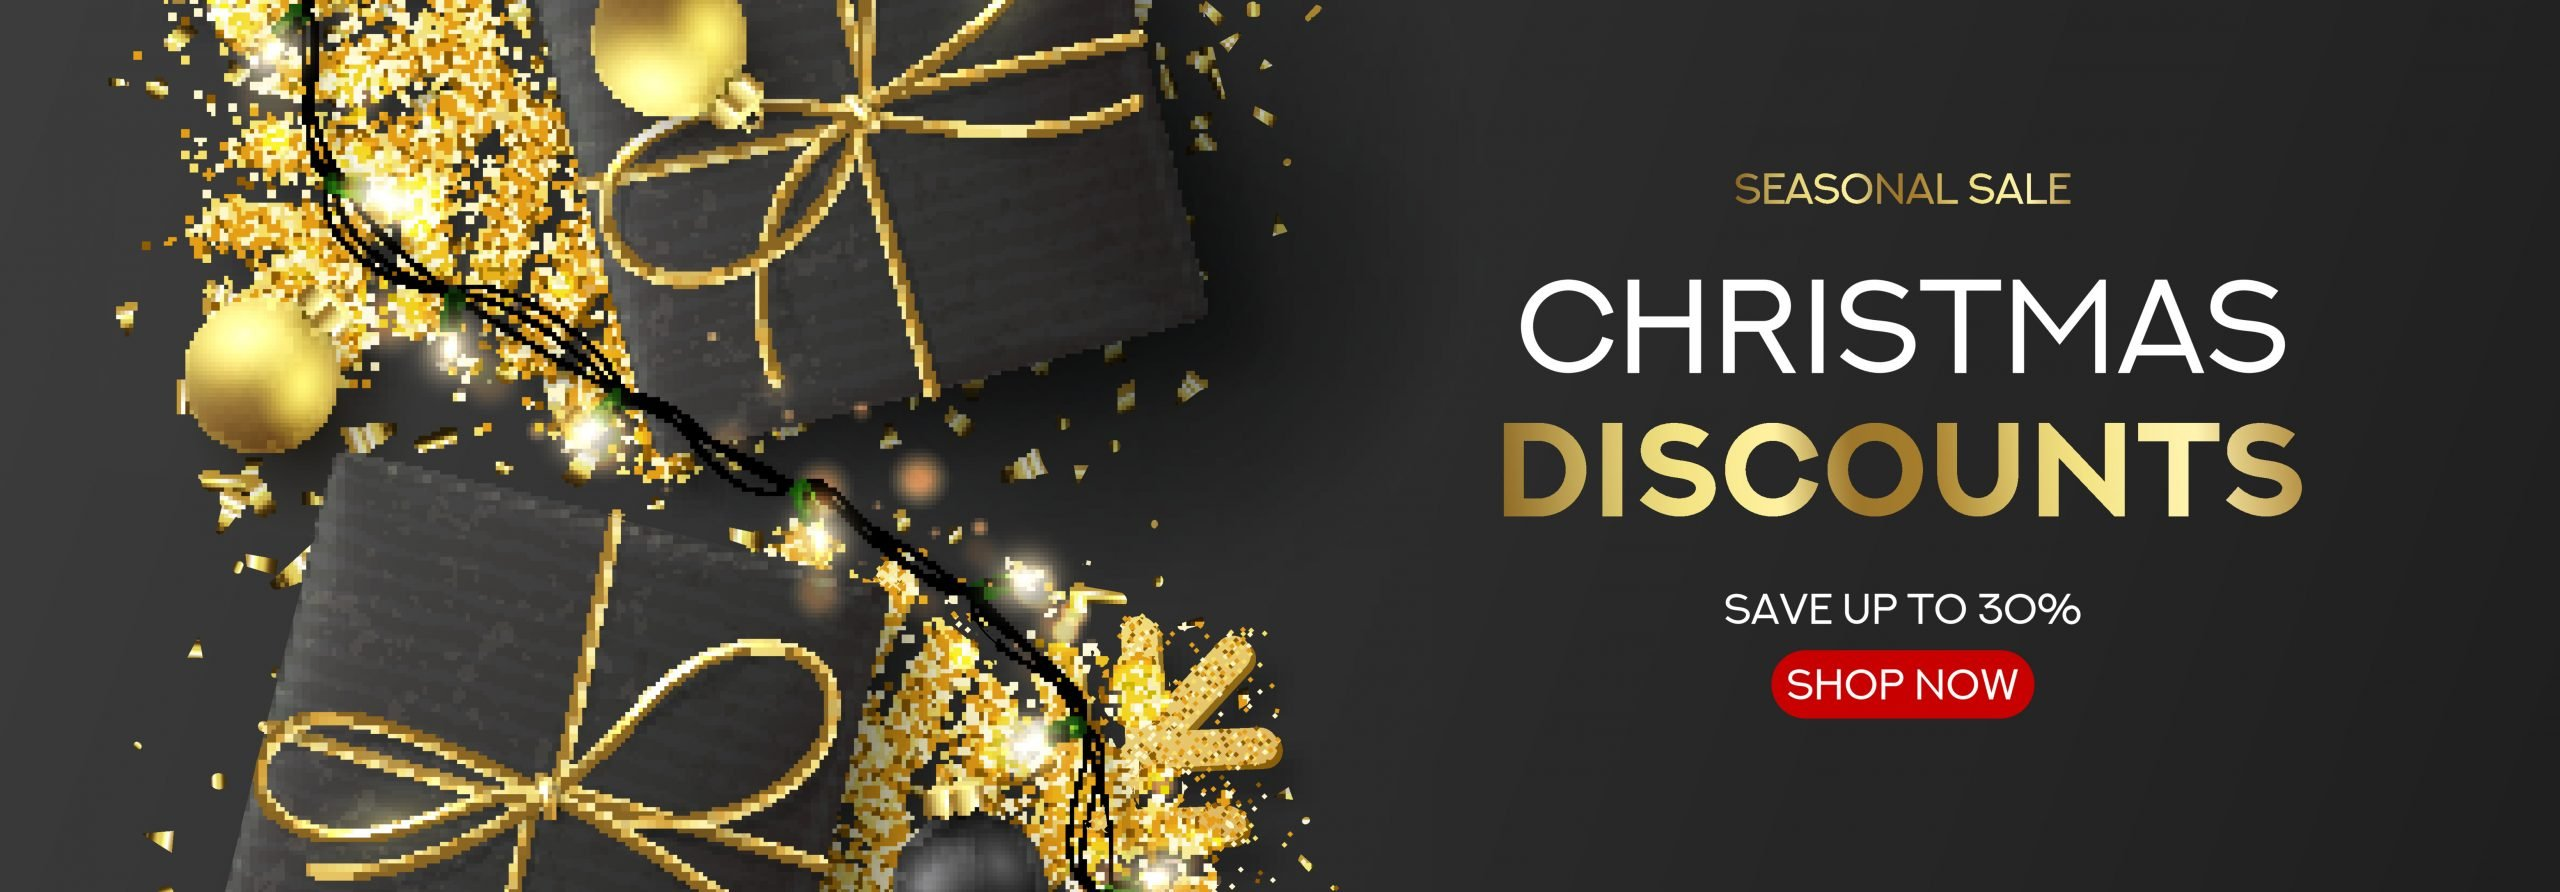 Horizontal banner for Christmas sale. Holiday background with black gift boxes, light garlands, Christmas golden balls, confetti and snowflakes. Vector illustration. Seasonal discount.